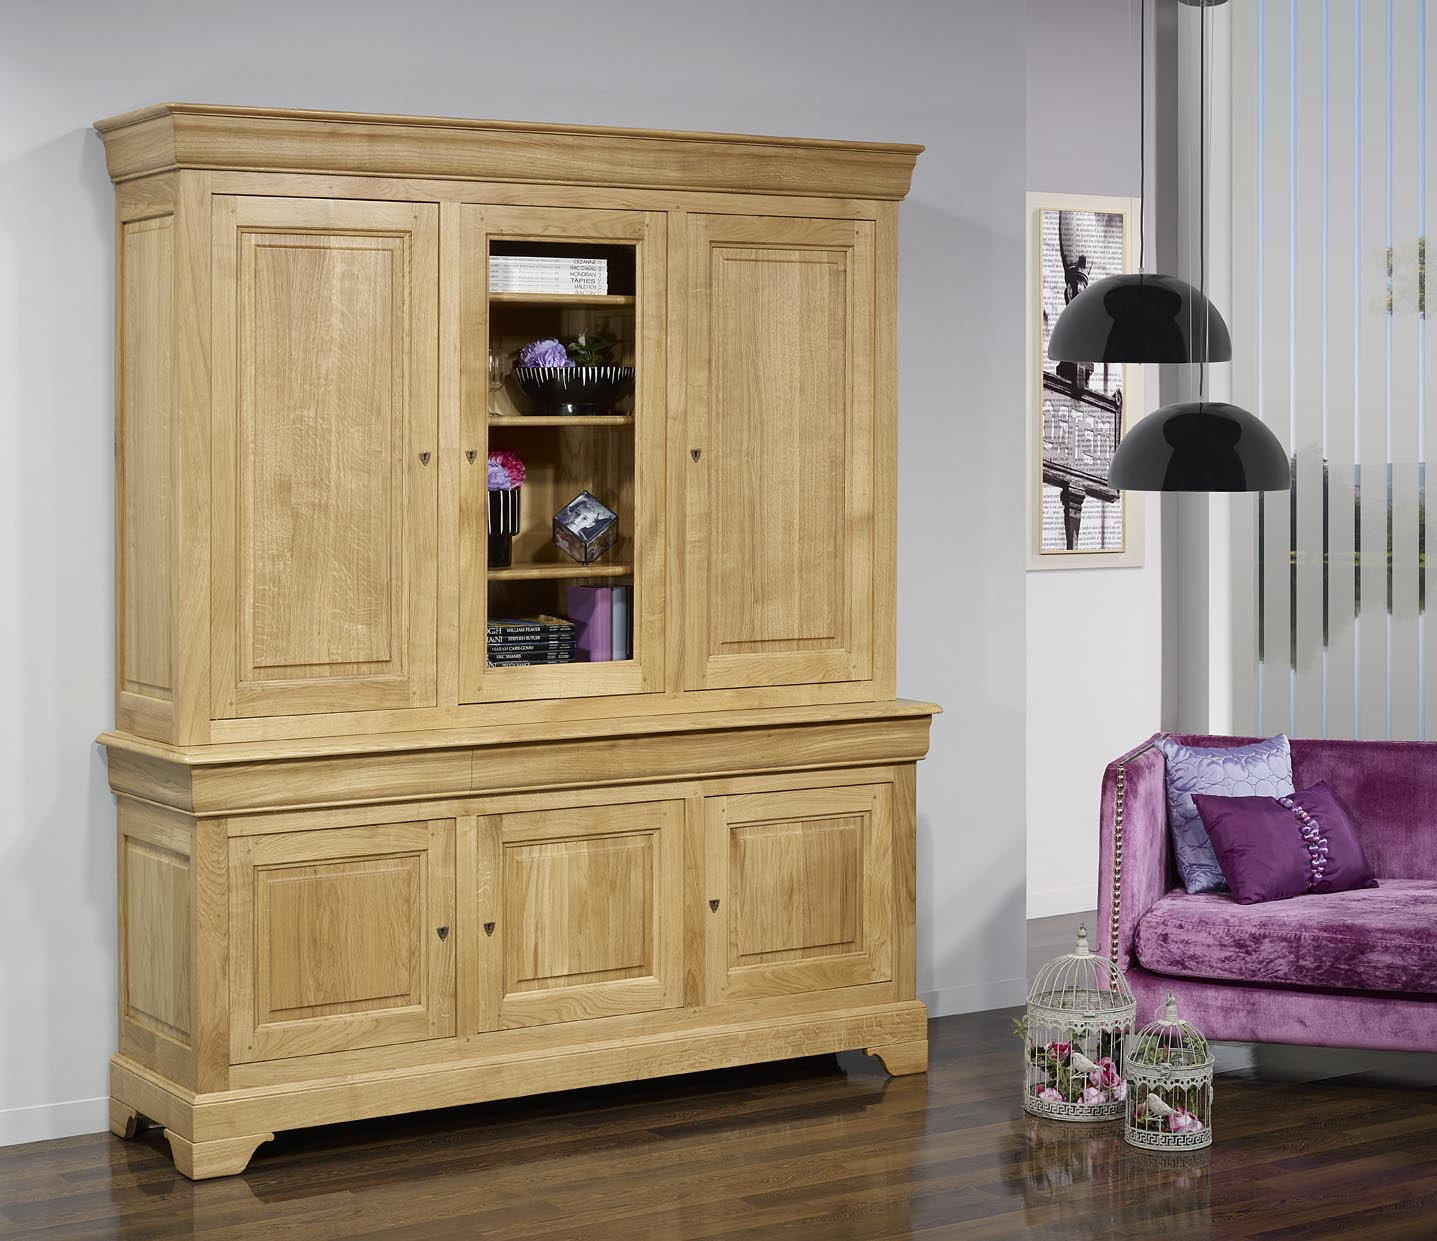 biblioth que 2 corps 3 portes thibaud en ch ne massif de style louis philippe meuble en ch ne. Black Bedroom Furniture Sets. Home Design Ideas